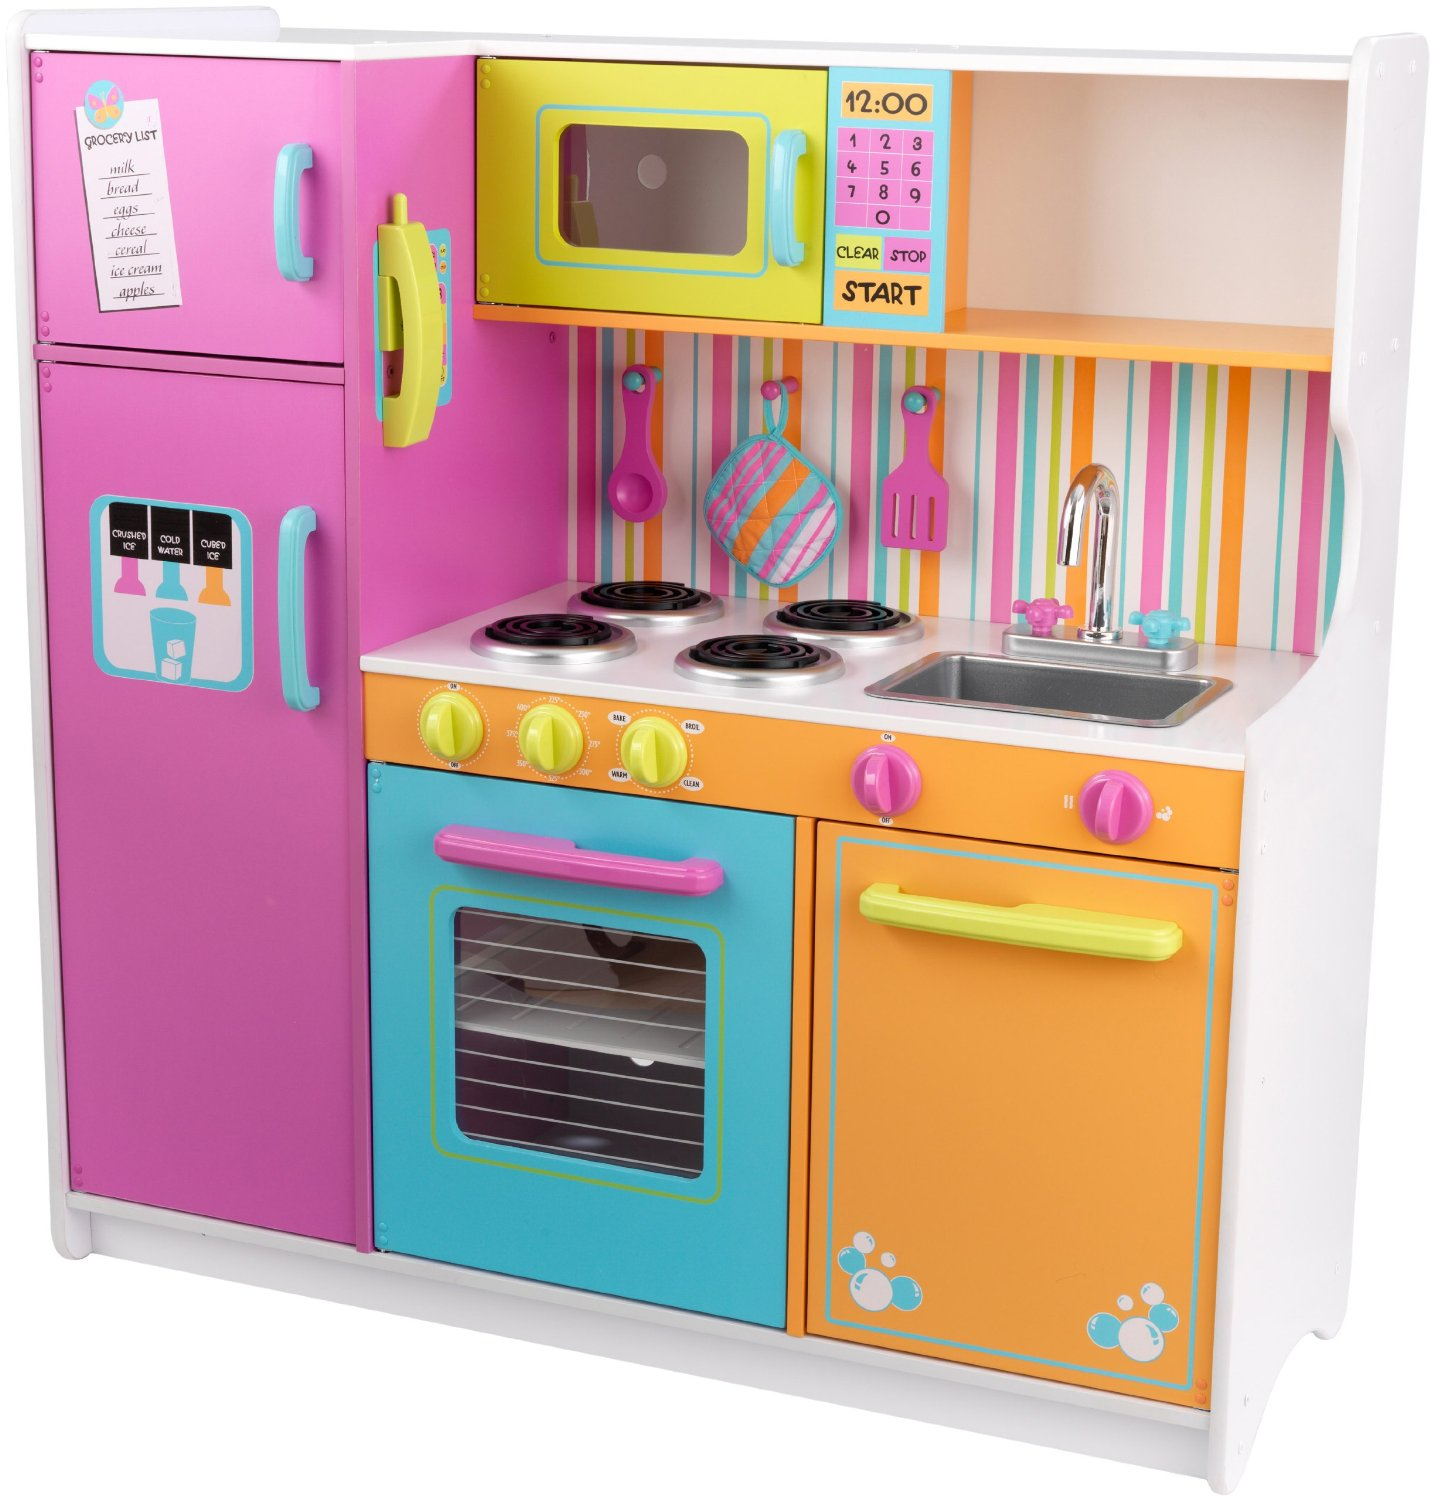 Kitchen set toys classy baby gear for Kitchen set for babies